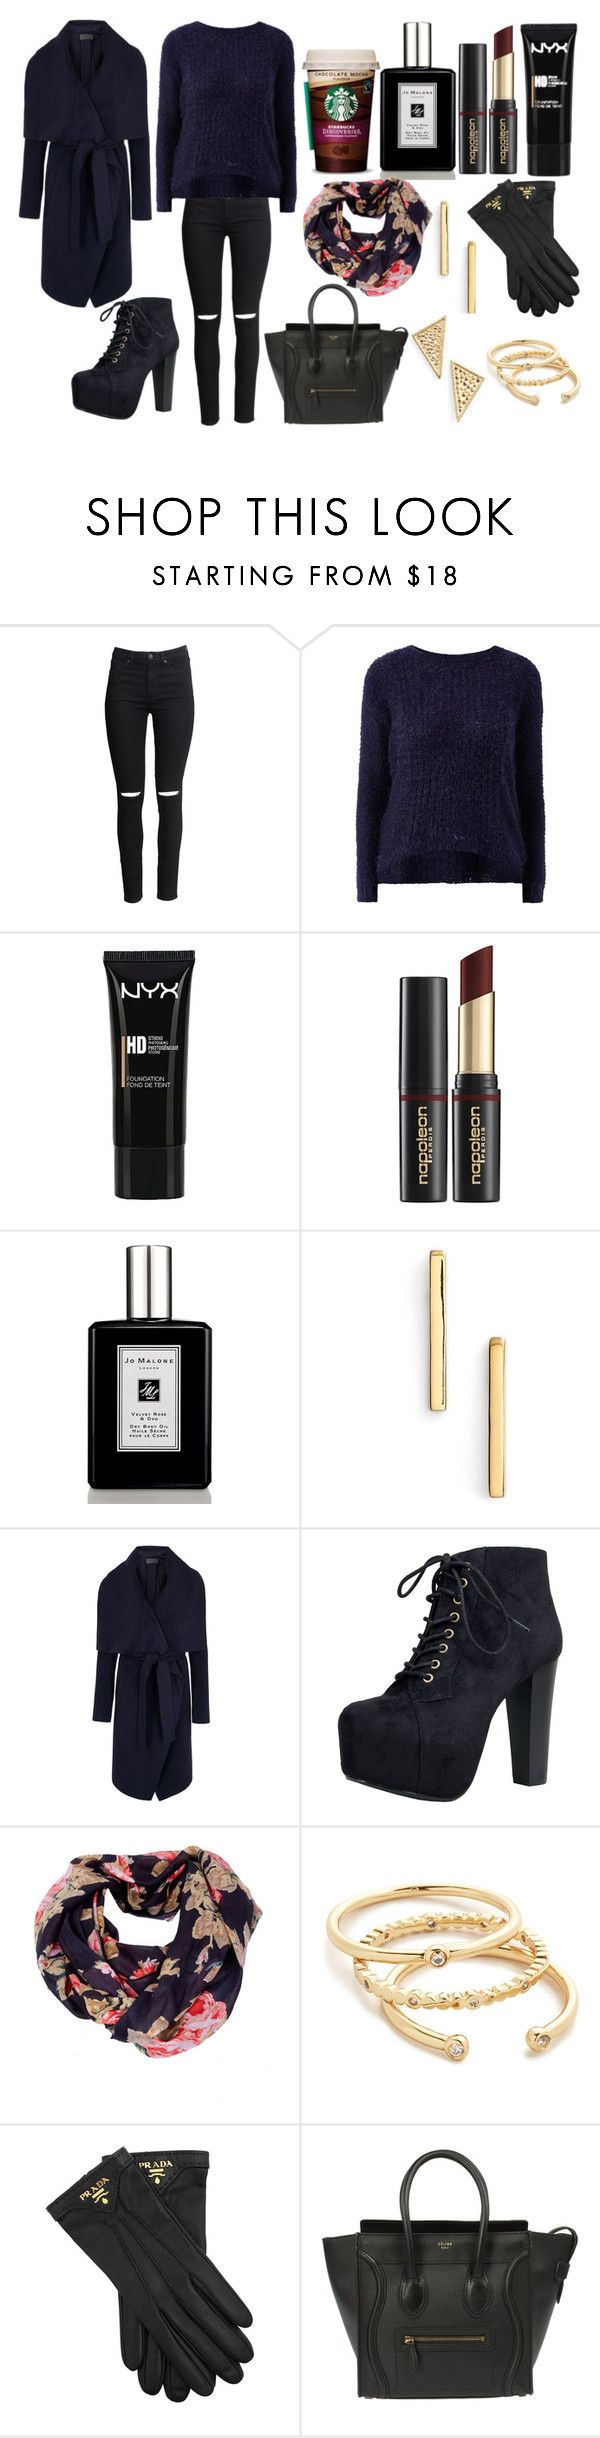 """Без названия #2465"" by southerncomfort ❤ liked on Polyvore featuring H&M, NYX, Napoleon Perdis, Jo Malone, Argento Vivo, Donna Karan, Speed Limit 98, Gorjana, Prada and CÉLINE"